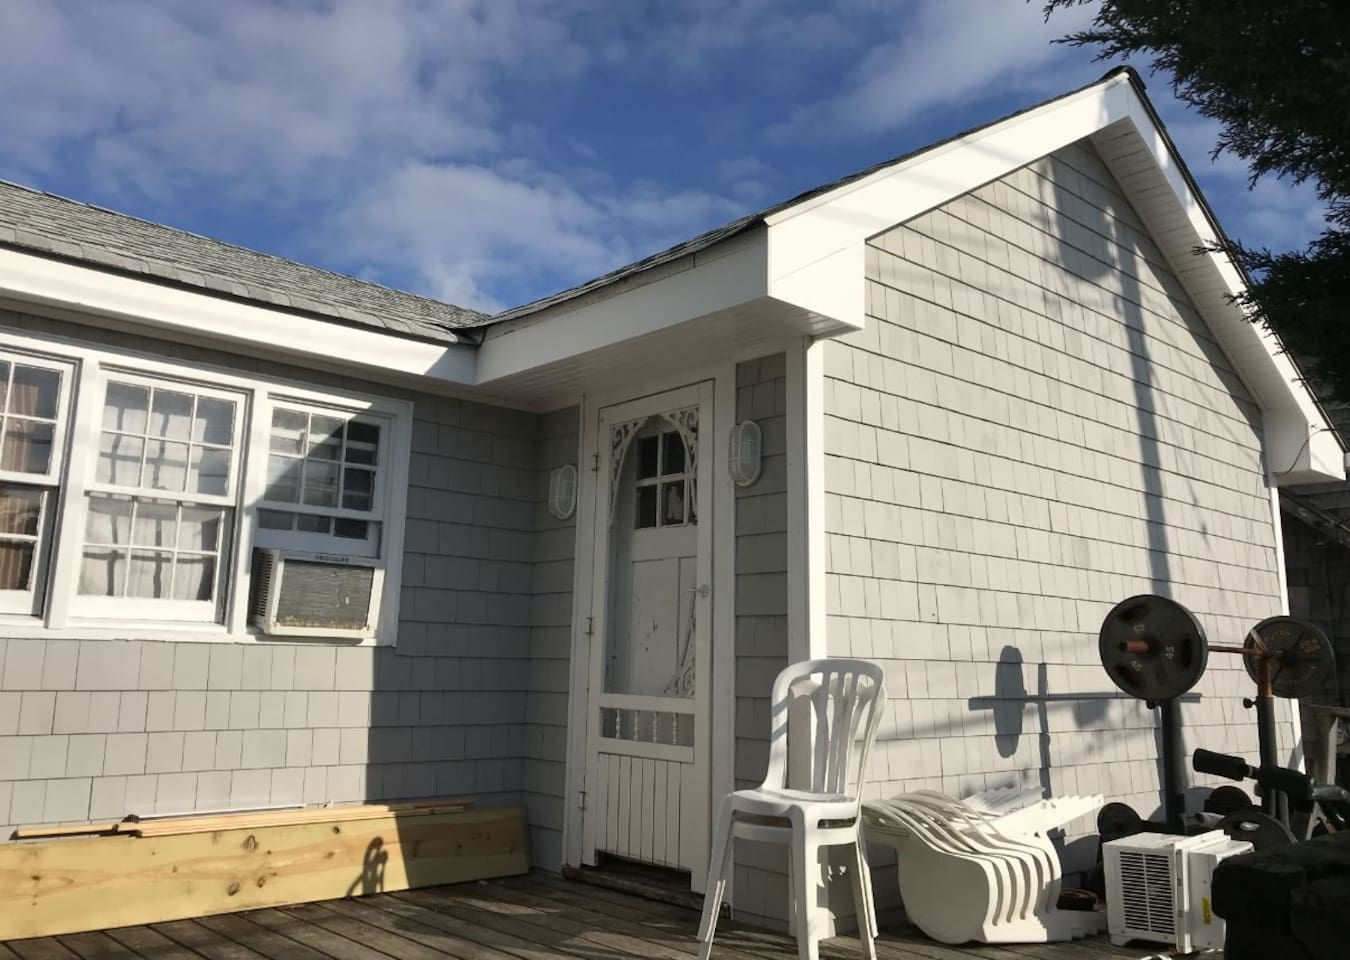 Ocean View newly renovated inside and out.  1 Bdrm, LR, New Kitchen, 2 decks.  Whole house, 2 lots off beach.  Adjacent too and has access to all FI Hotel amenities.  Sleeps 5. Full and twin bunk in bedroom and 2 twins in LR.